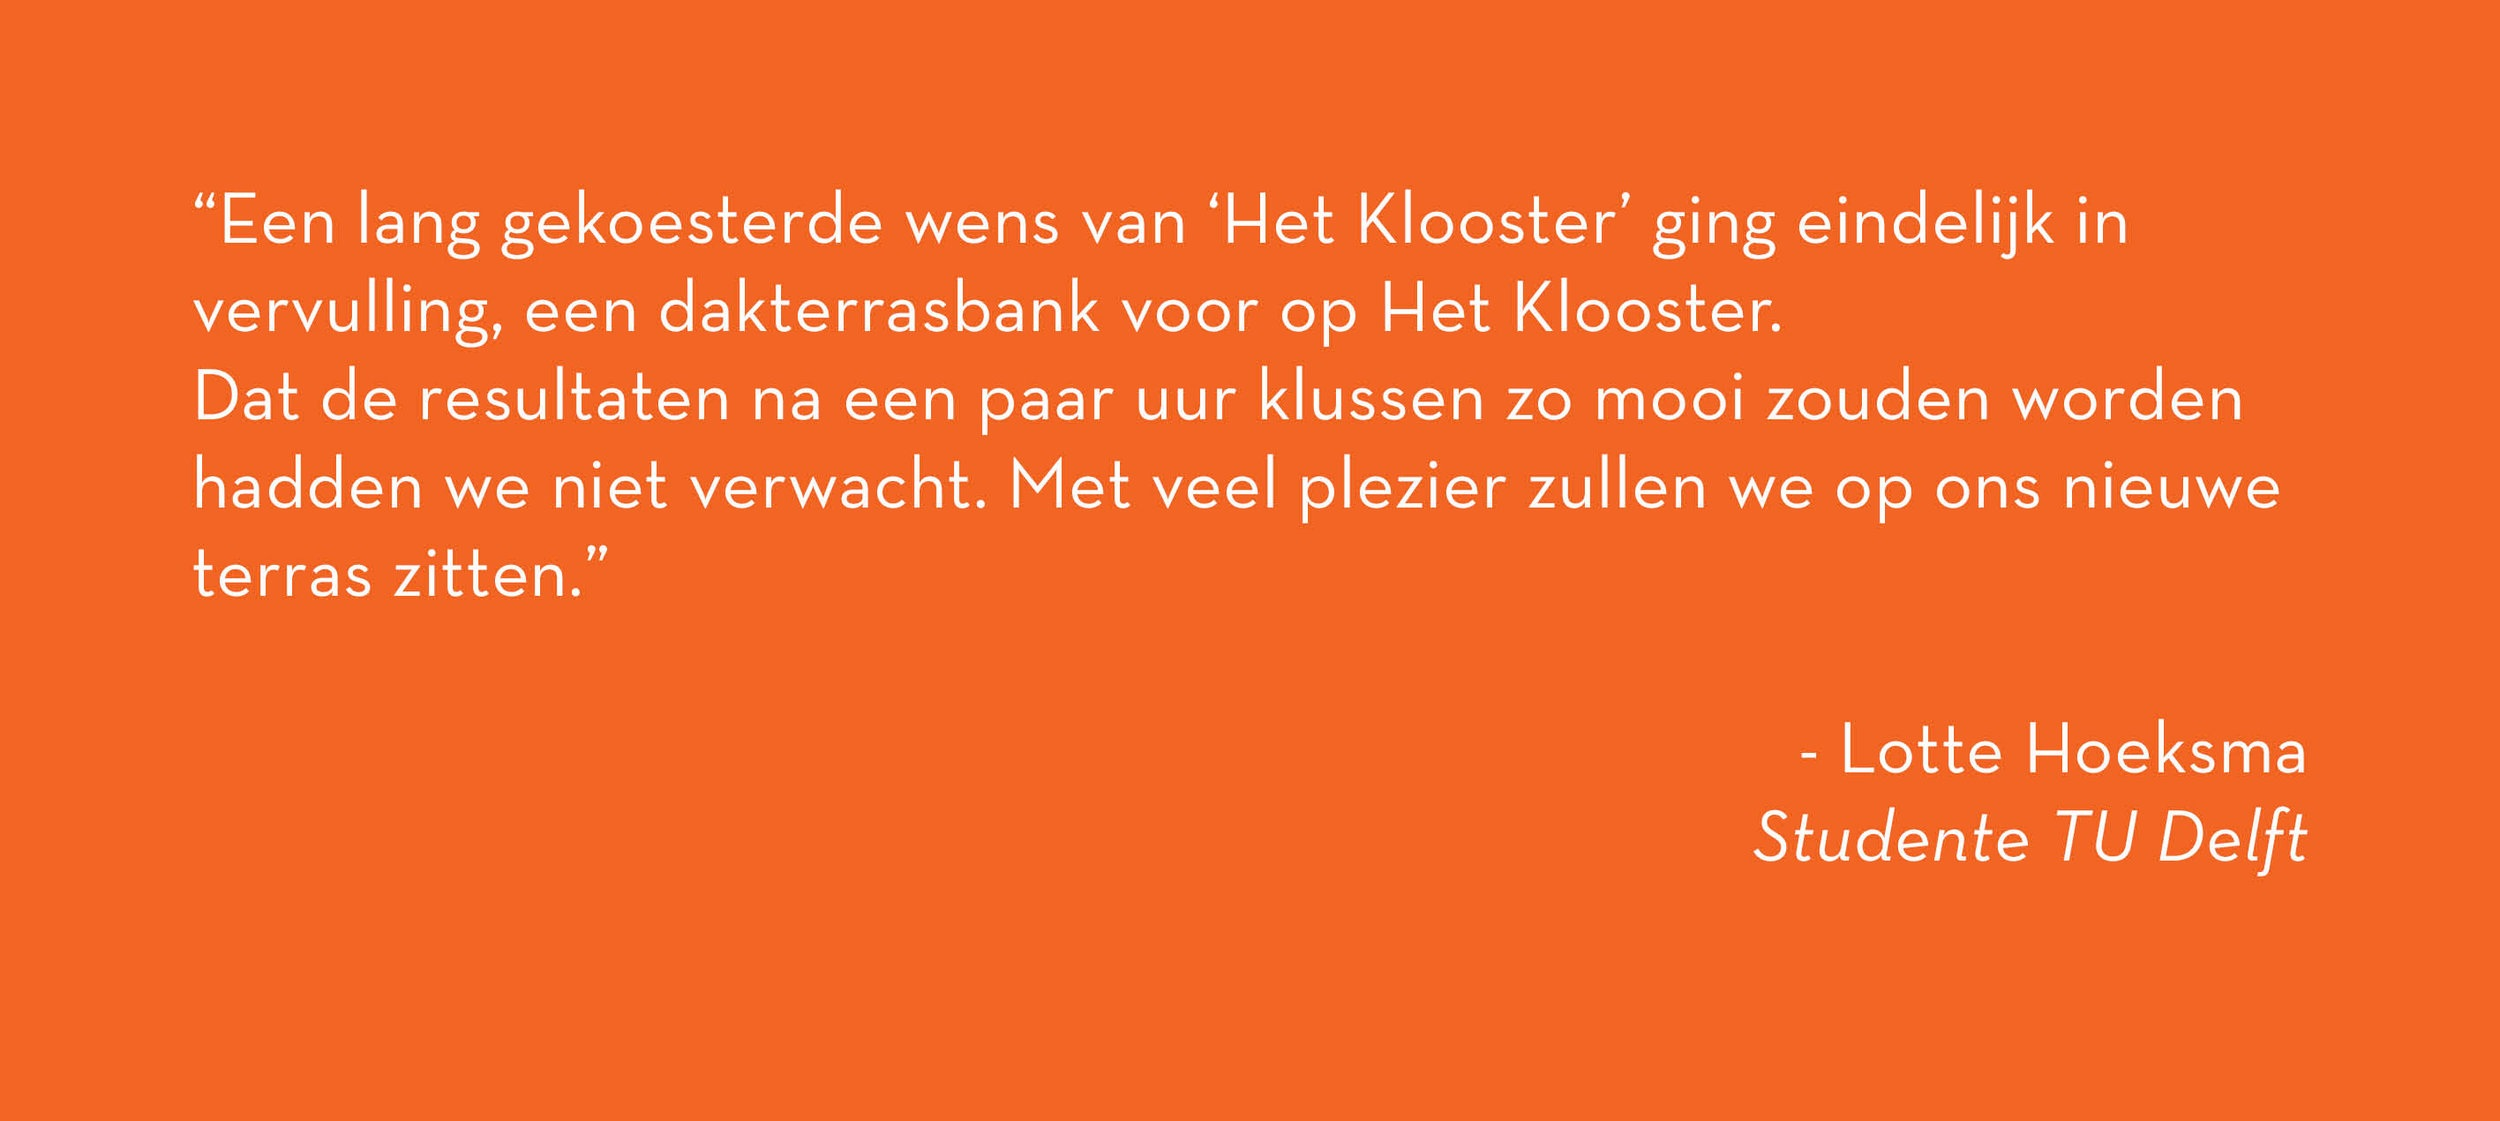 quote+TU+Delft.jpg